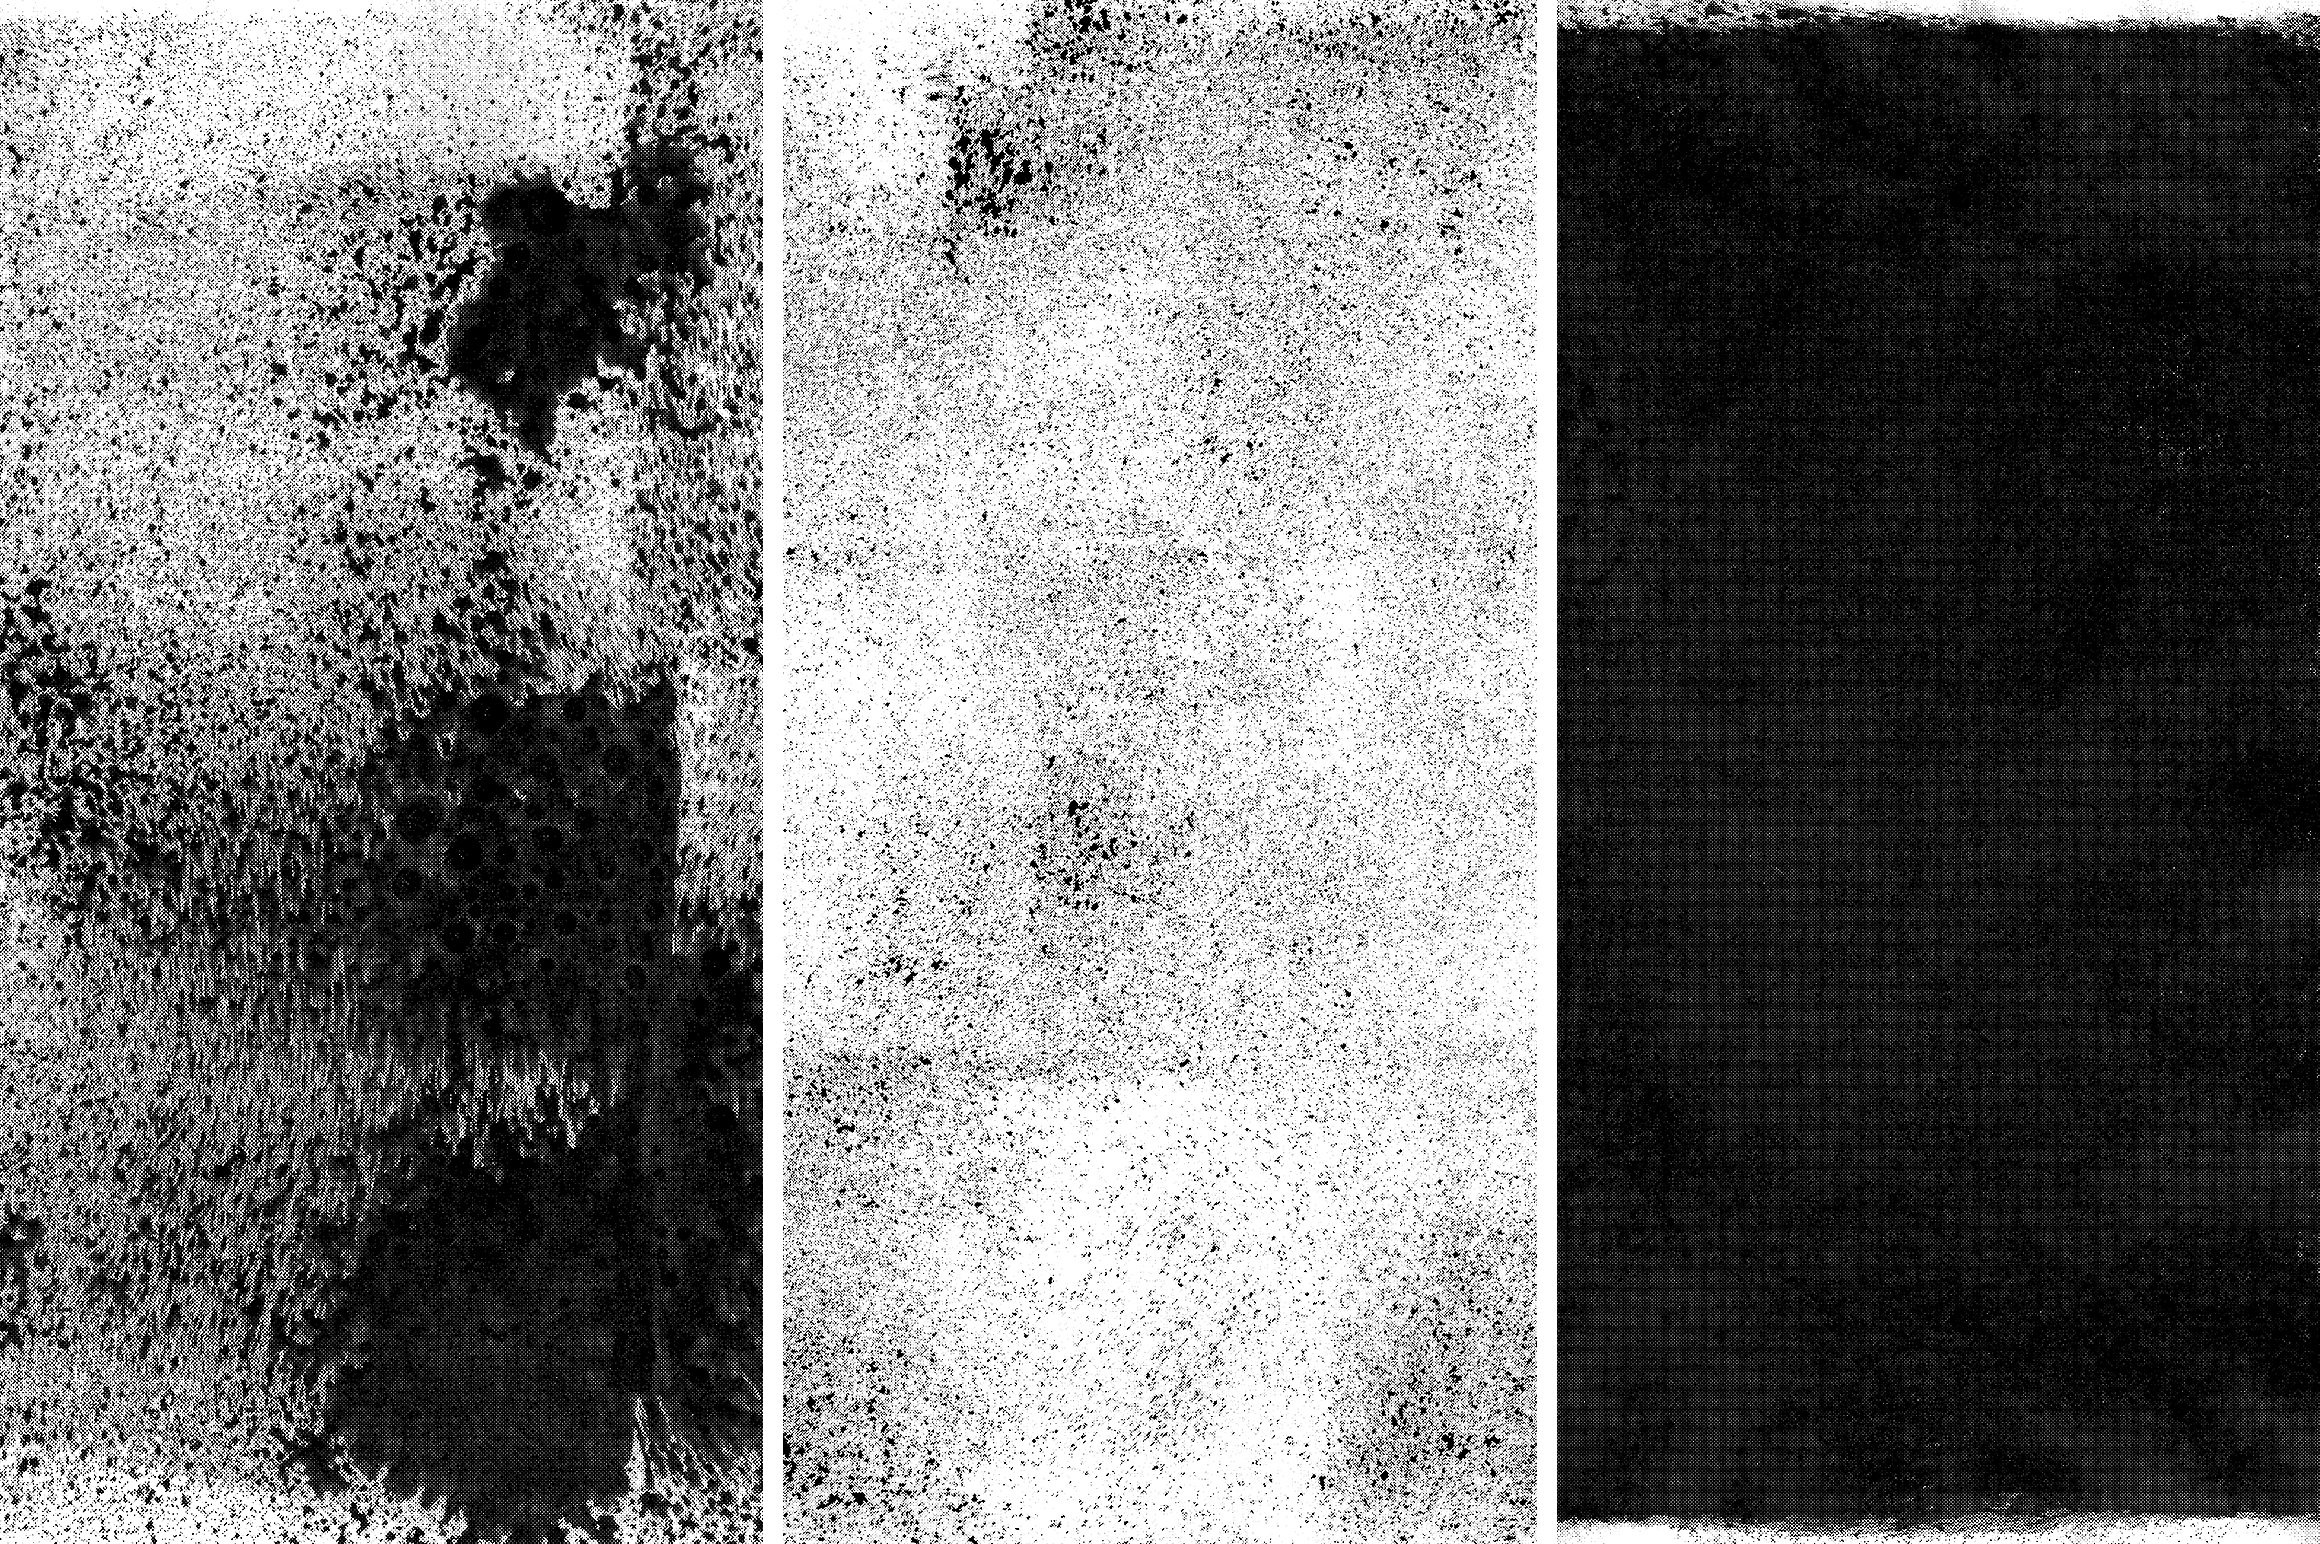 Rolled Ink Textures Volume 02 Graphic Textures By theshopdesignstudio - Image 14